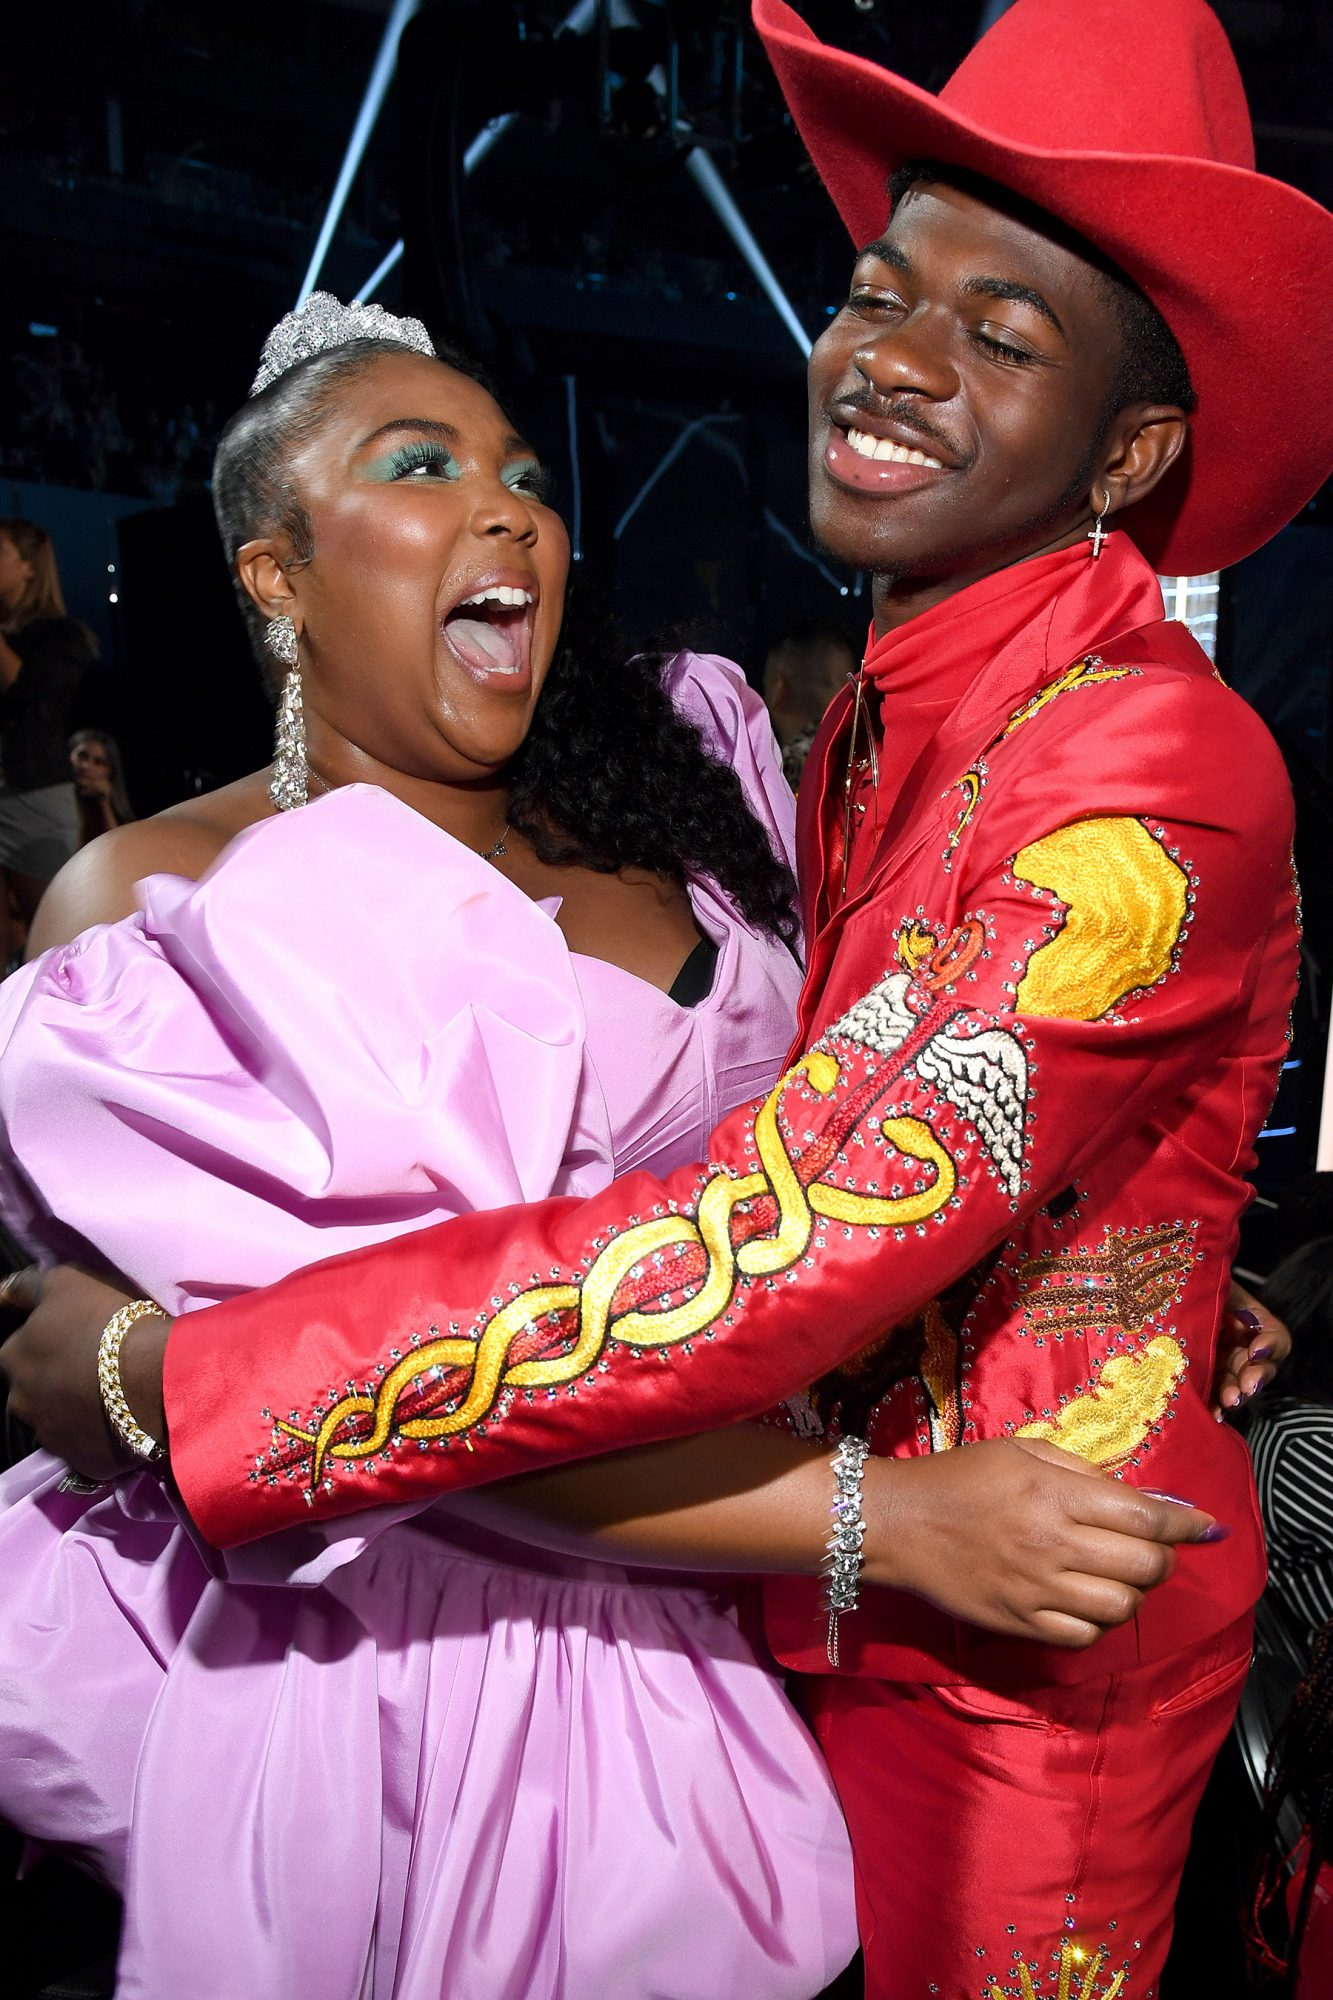 Lizzo and Lil Nas X